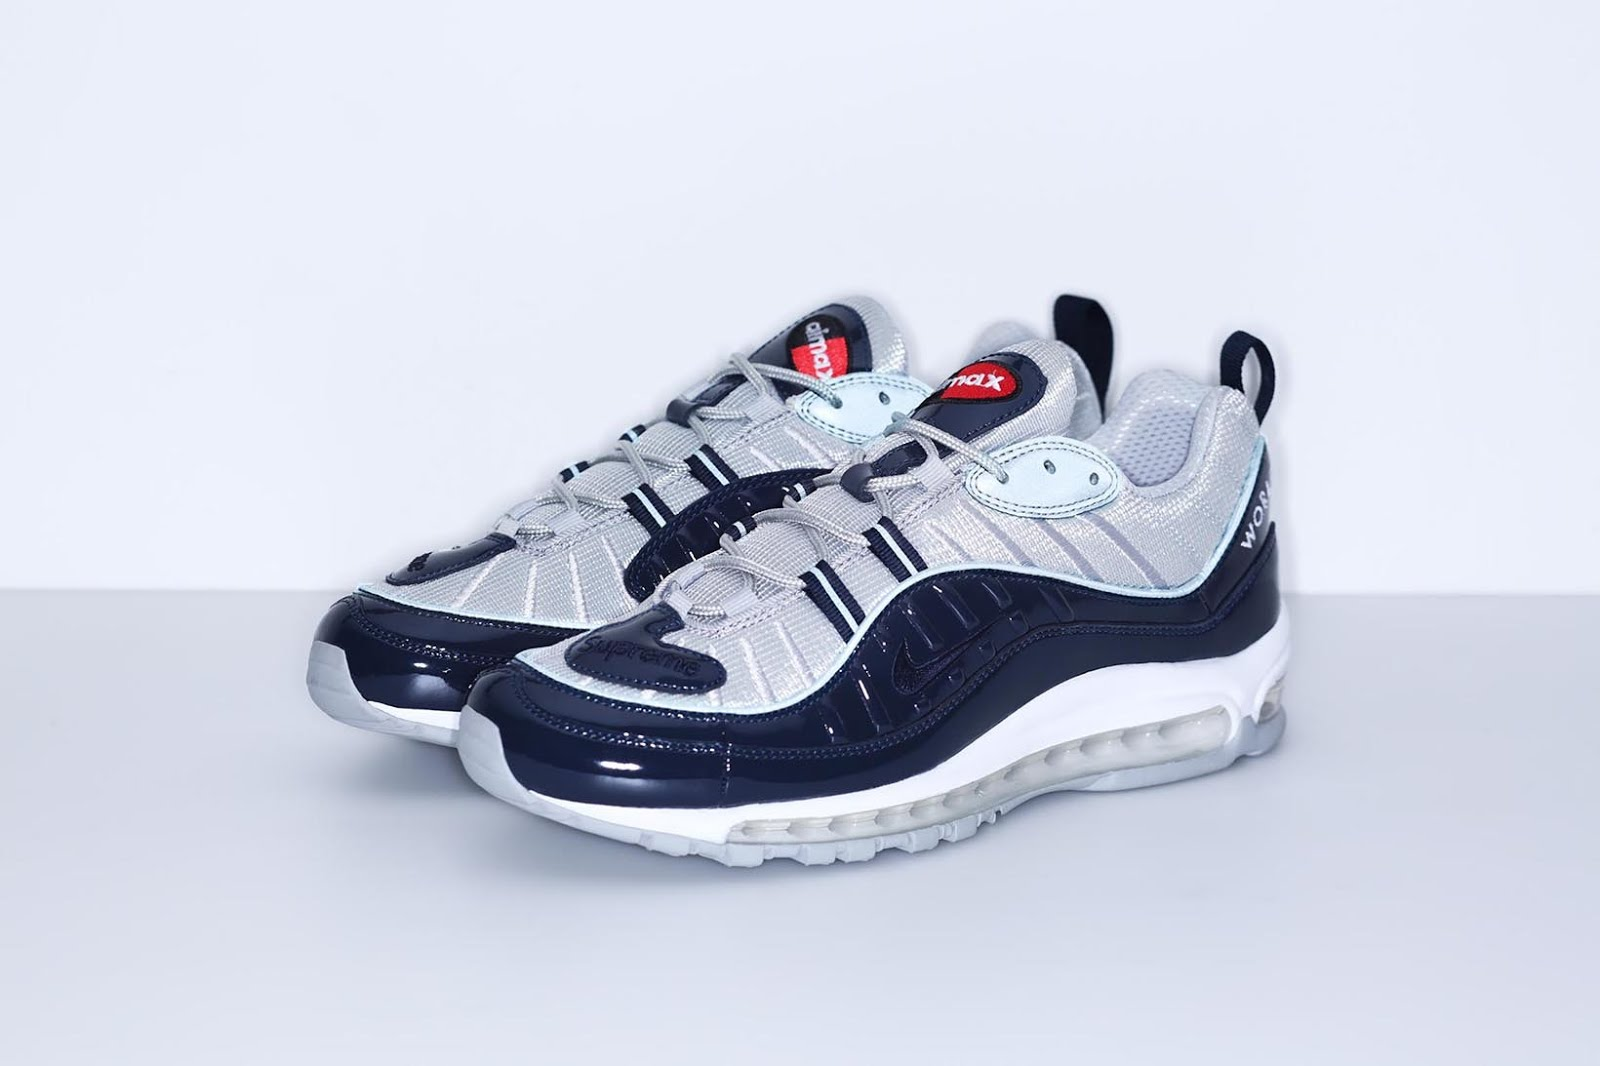 93f8ae4b247d Supreme x Nike Air Max 98 Re-ReleasesTomorrow - Sneaker News   Review